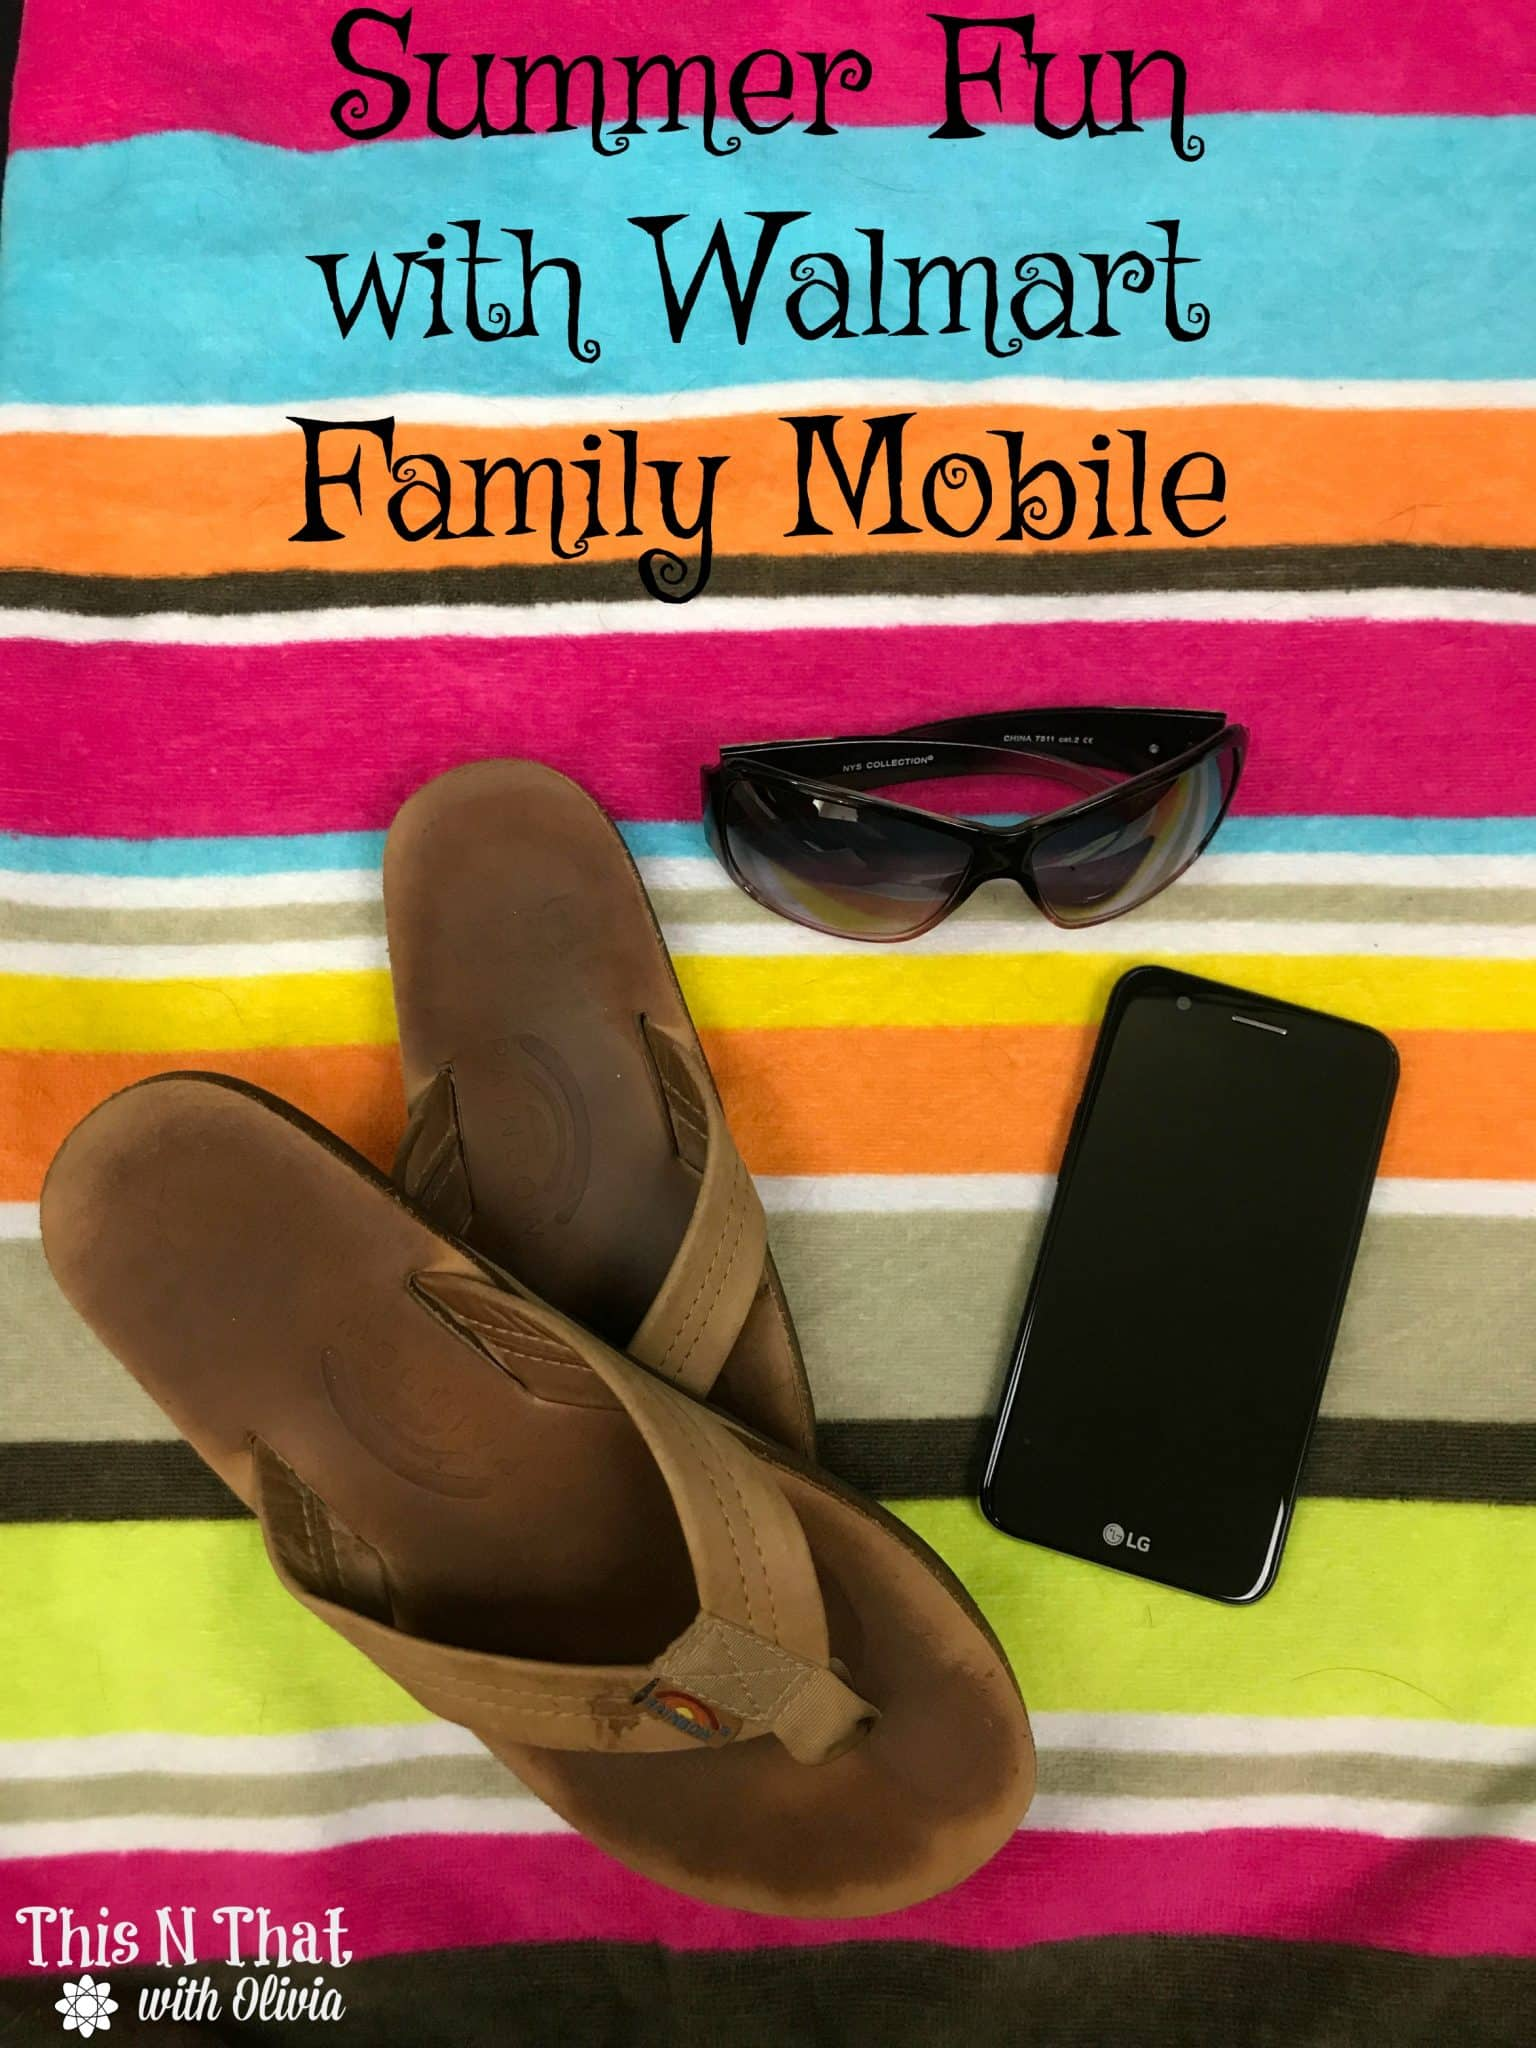 Enjoy Summer with the Walmart Family Mobile! #SummerIsForSavings #WFM1 @FamilyMobile